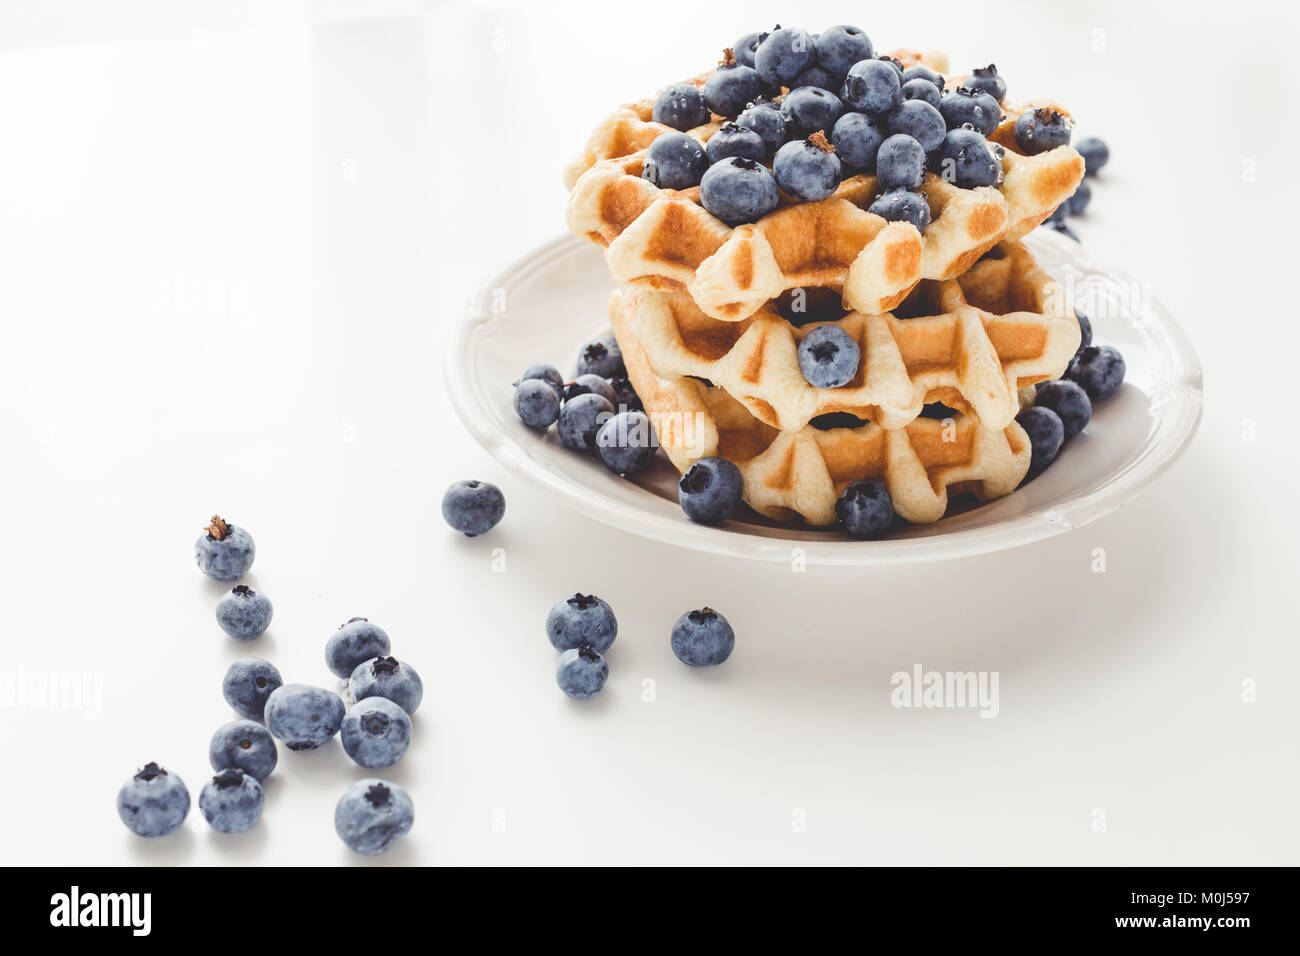 plate of tasty fresh stacked belgian waffles with blueberries - Stock Image